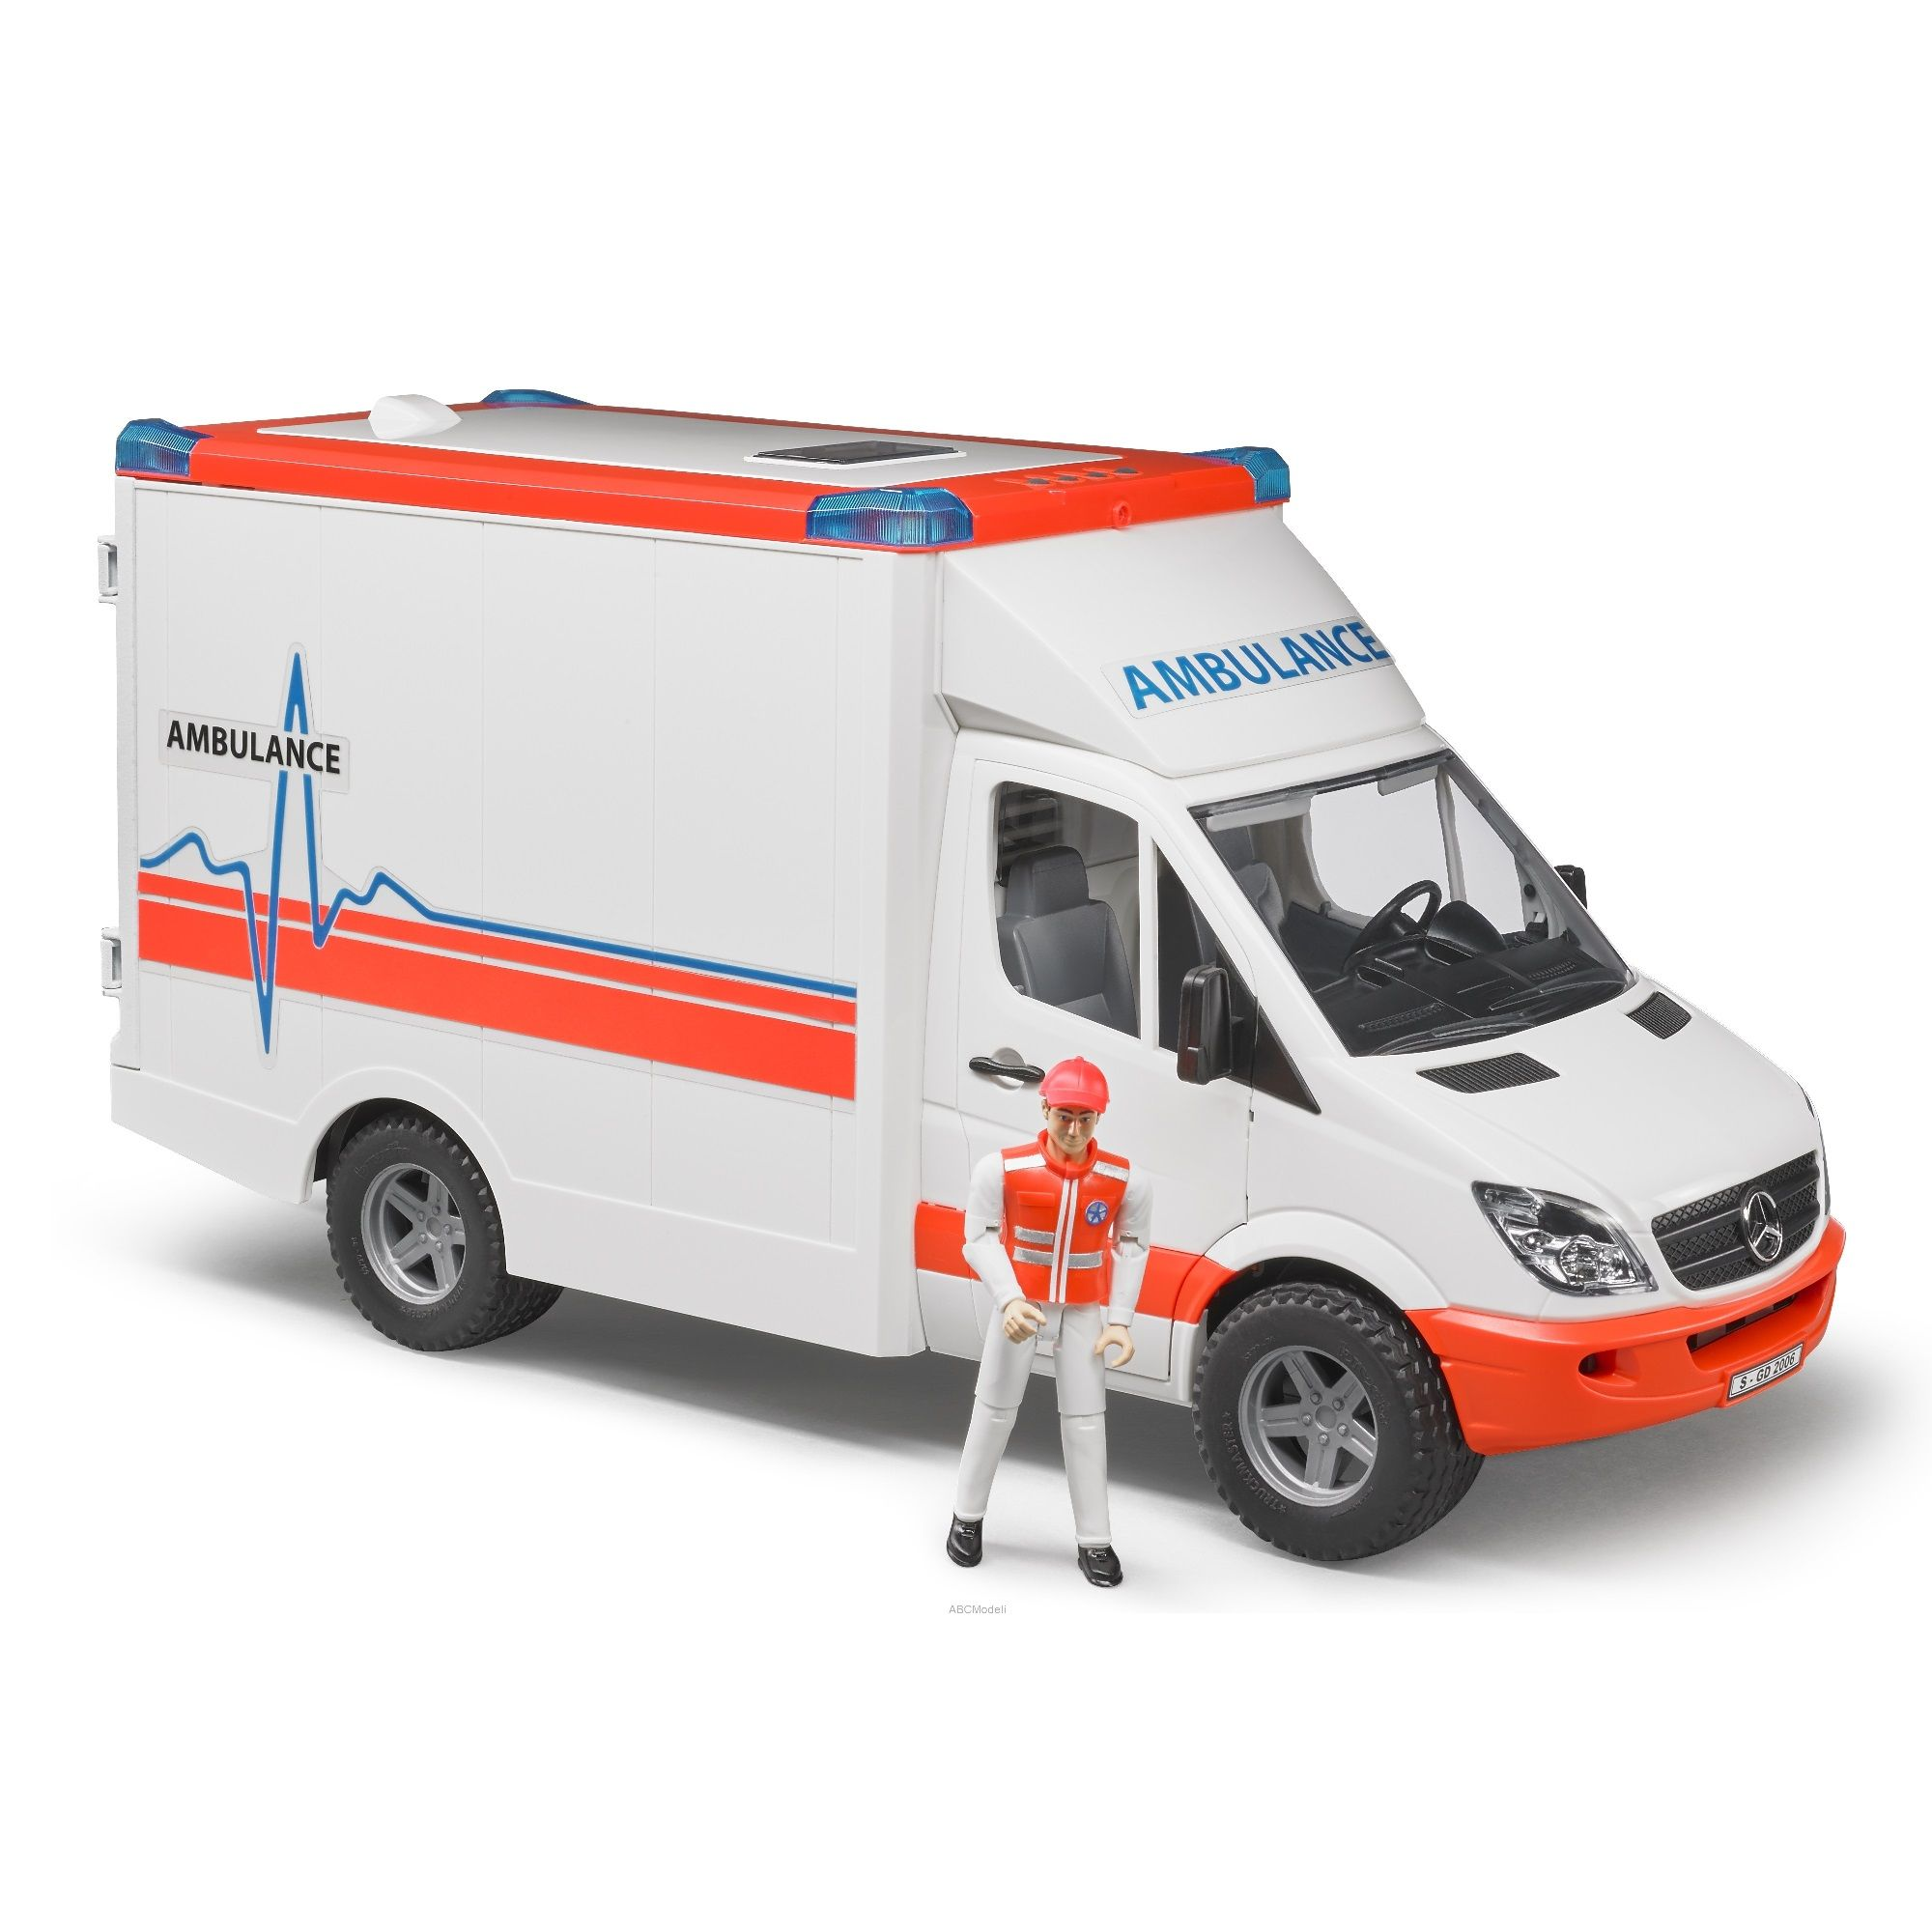 Mercedes Benz Spinter Ambulance with Driver - Vehicle Toy by Bruder Trucks